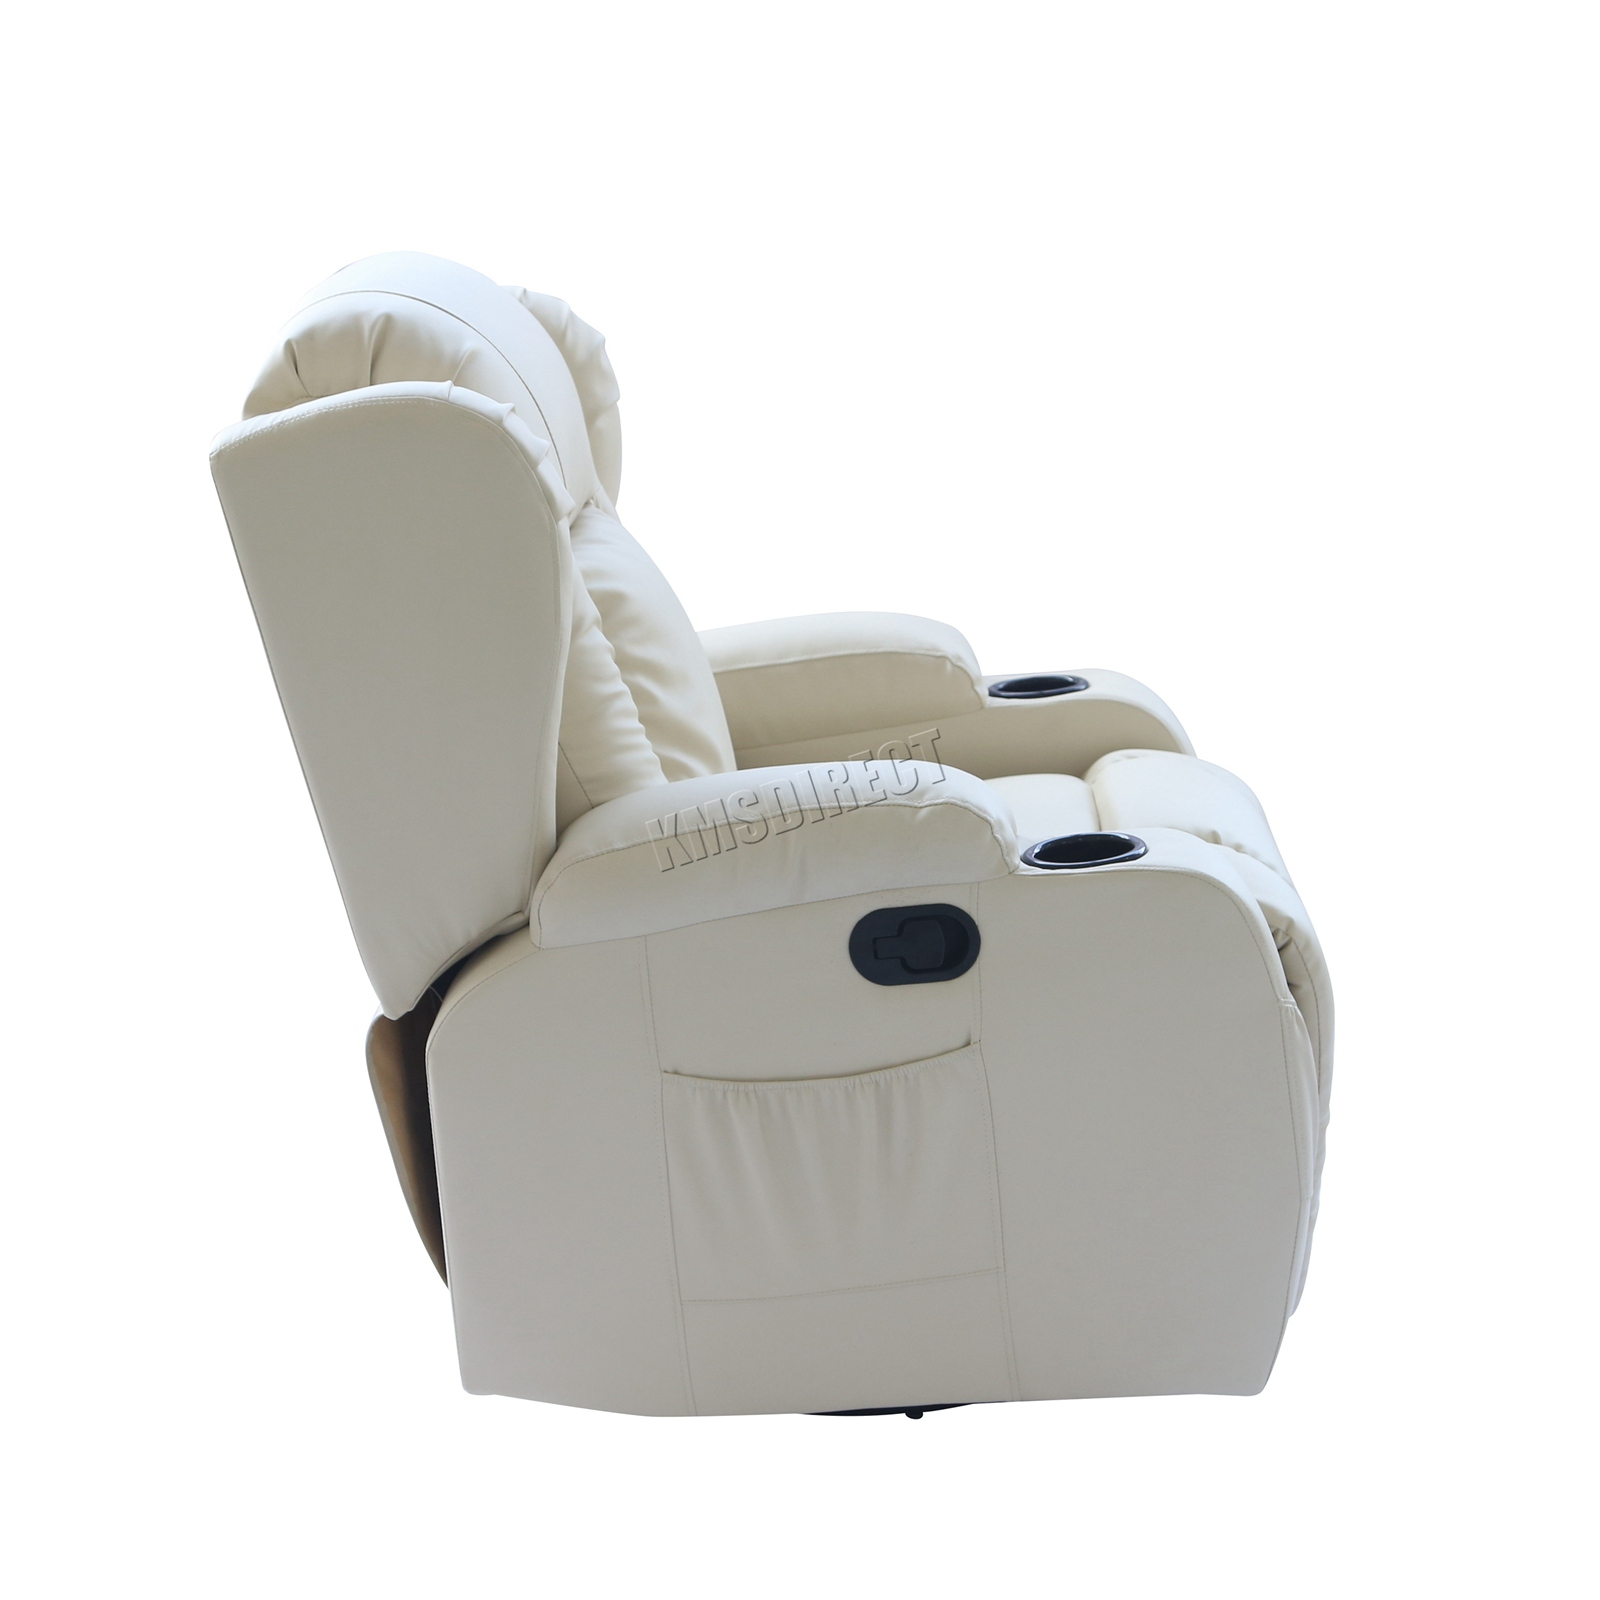 WESTWOOD-Leather-Recliner-Armchair-Swivel-Heated-chair-Massage-Gaming-Chair thumbnail 38